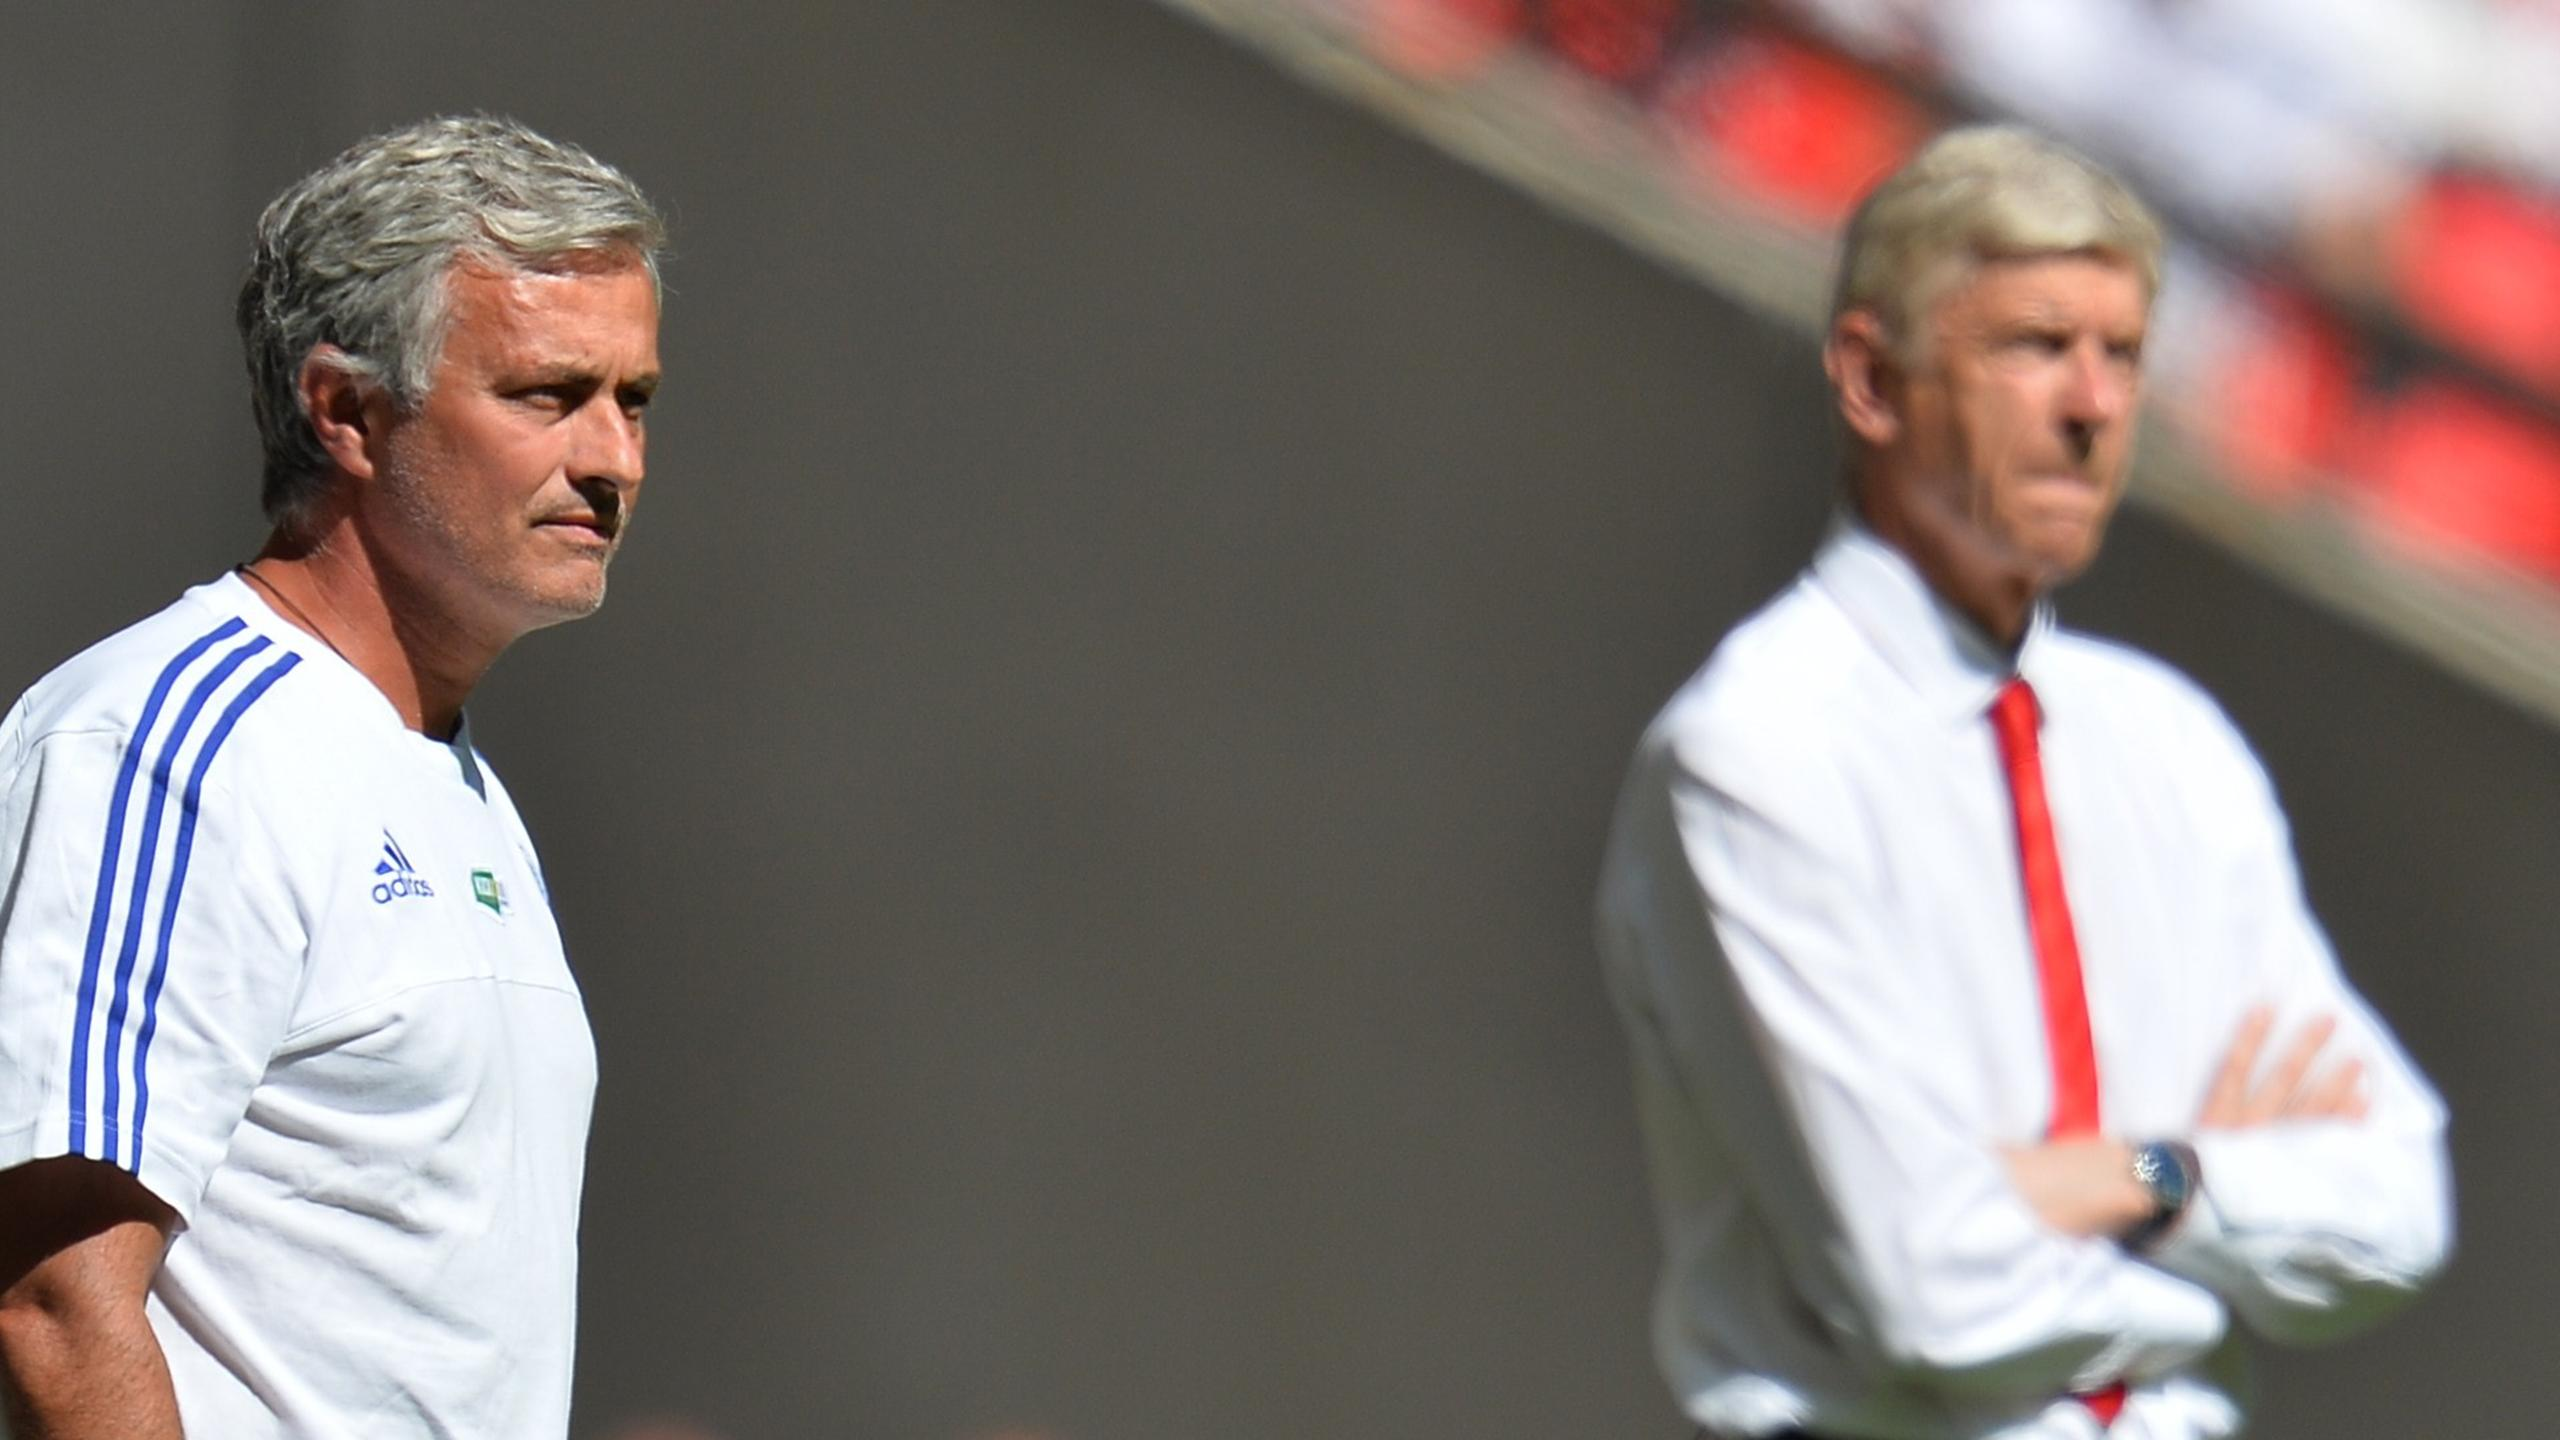 Jose Mourinho while at Chelsea (L) and Arsenal's French manager Arsene Wenger (R) watch from the side during the FA Community Shield football match between Arsenal and Chelsea at Wembley Stadium in north London on August 2, 2015